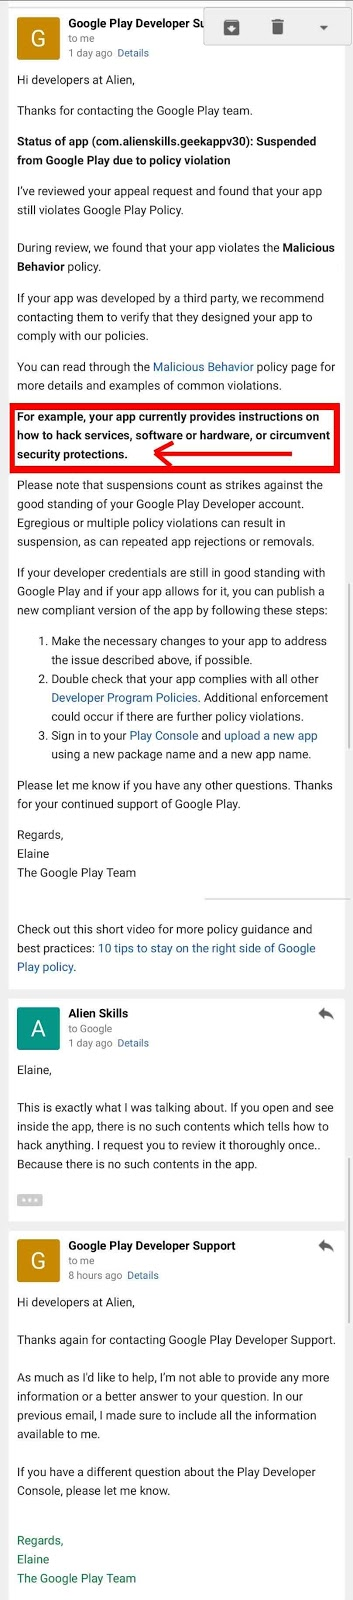 PissOffGoogle: GEEK APP BANNED AGAIN FROM GOOGLE PLAY WITH